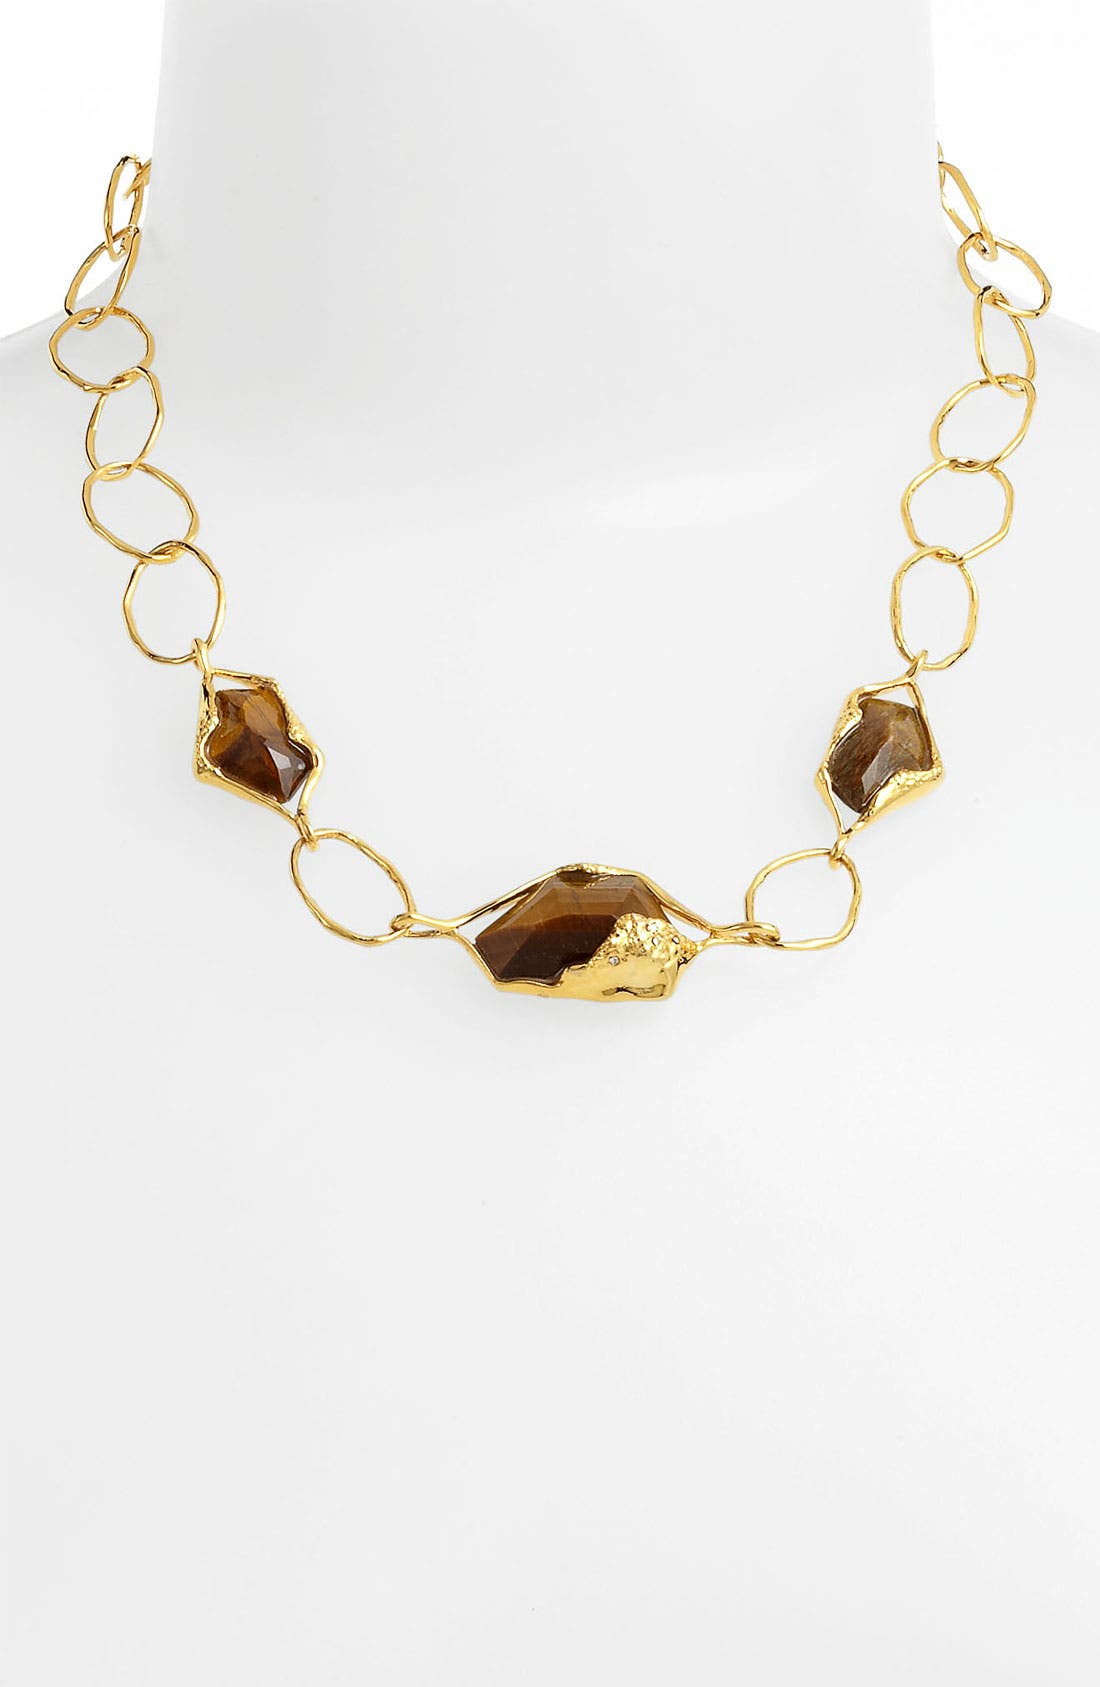 Alternate Image 1 Selected - Alexis Bittar 'Miss Havisham - Liquid Gold' Link Necklace